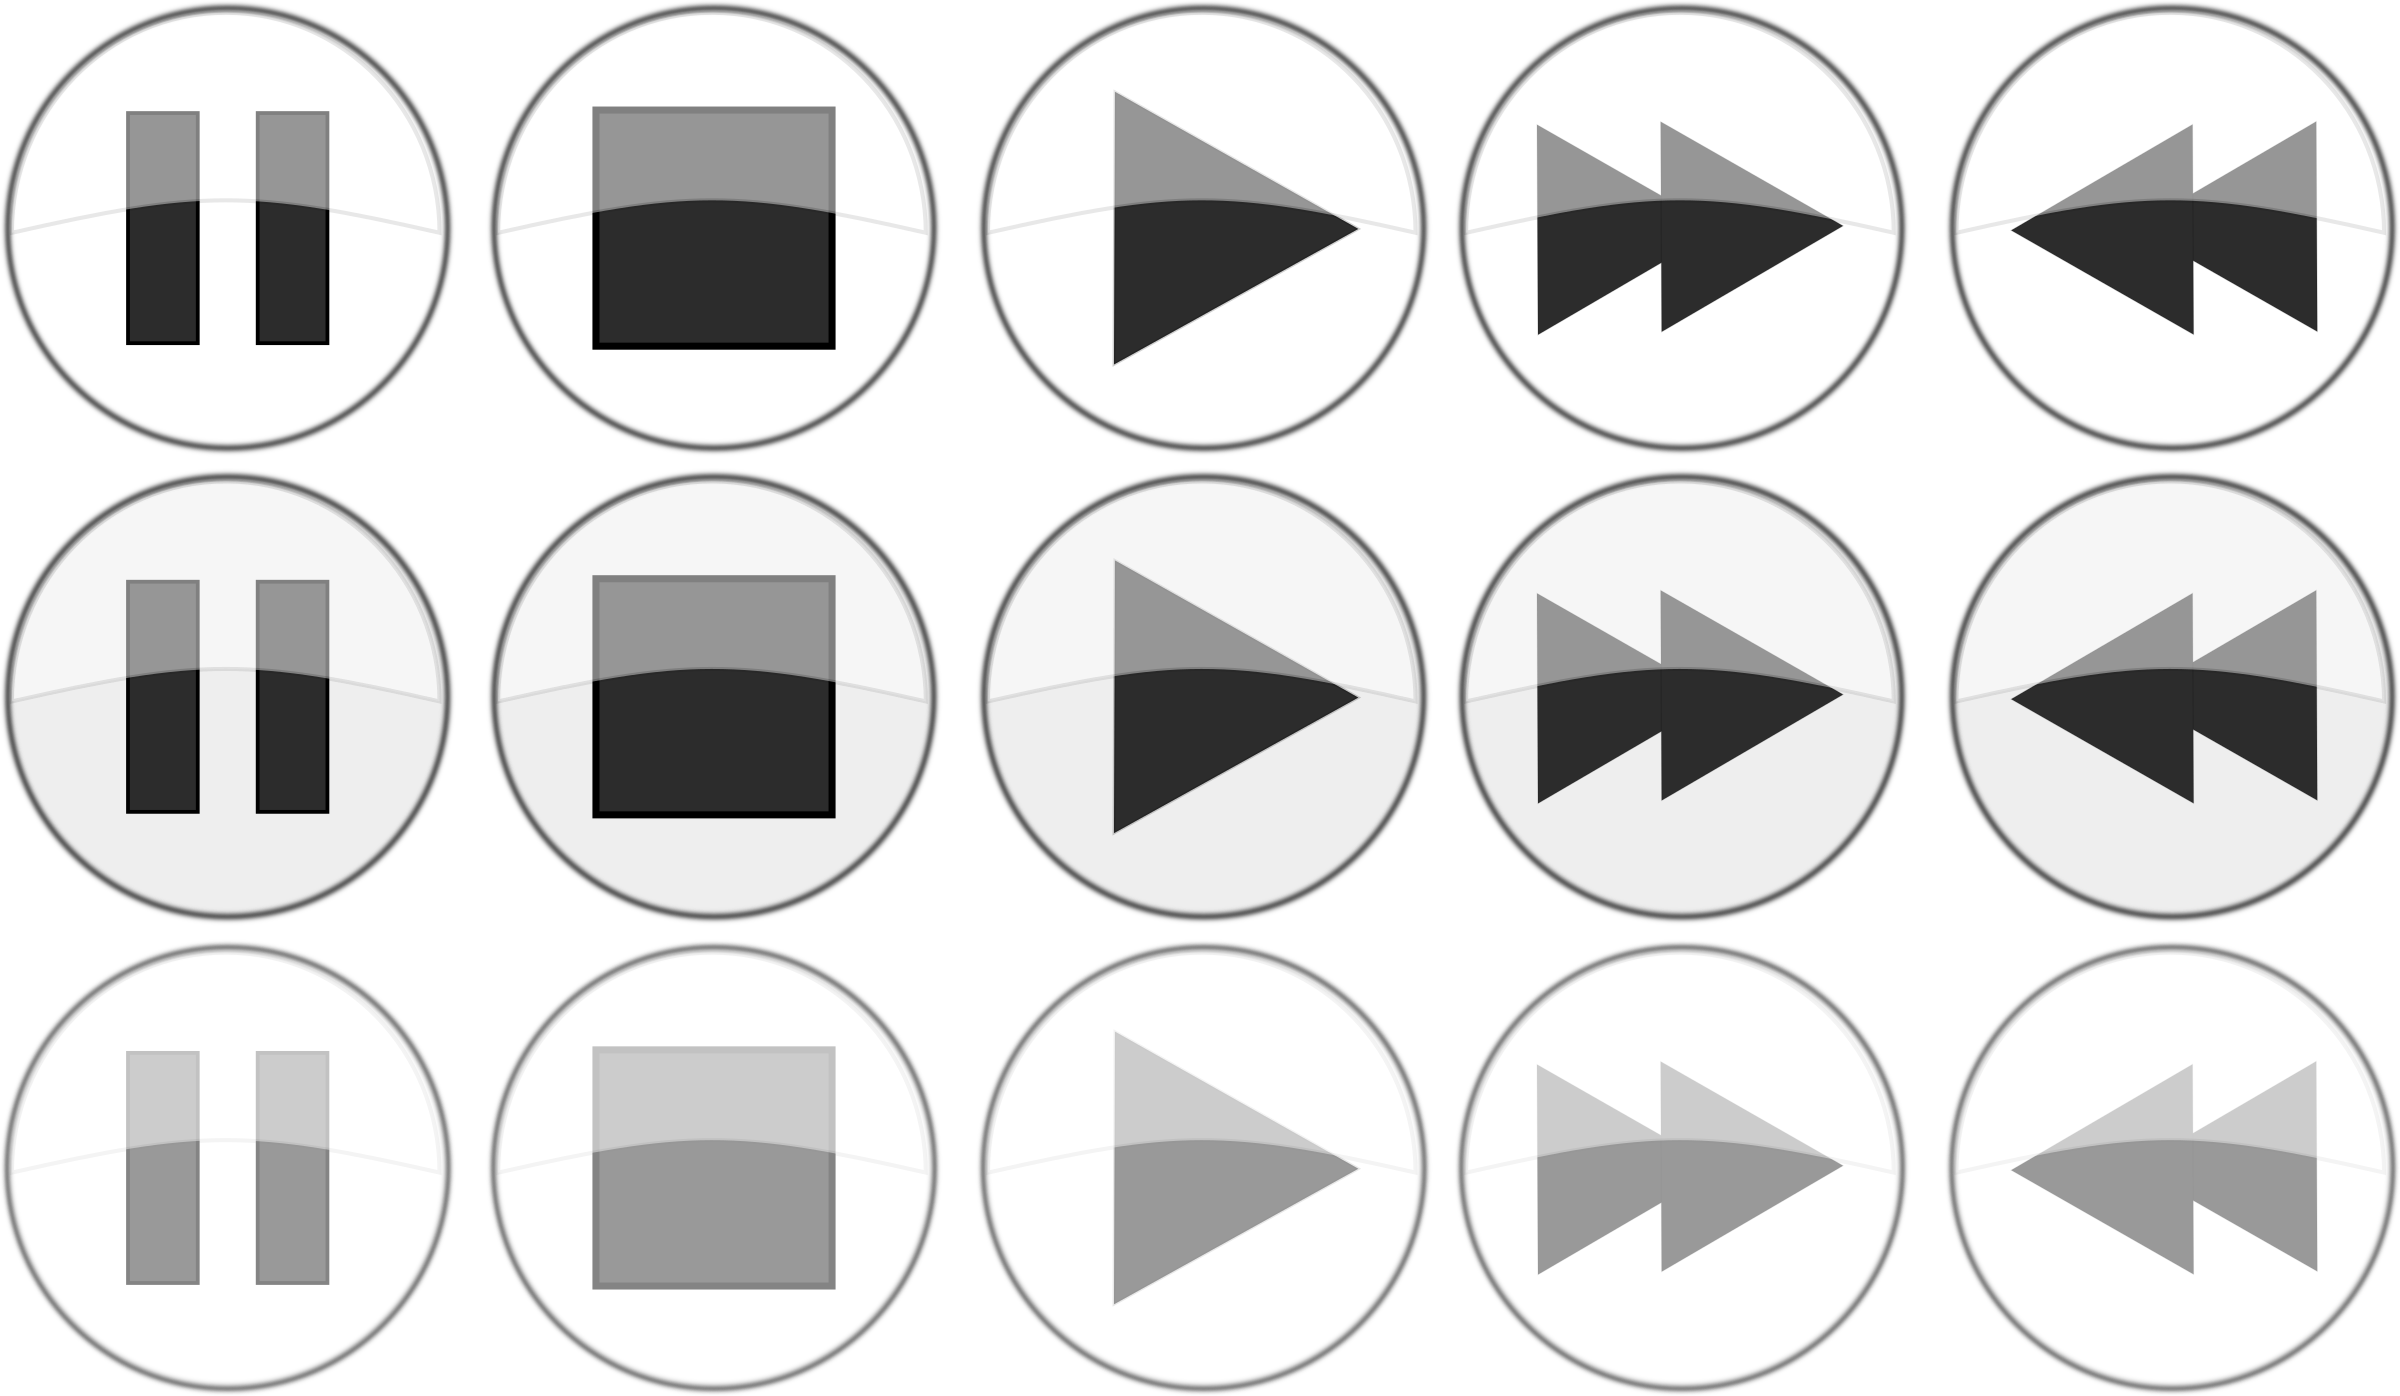 Glossy media player {normal active, focus} buttons by tct